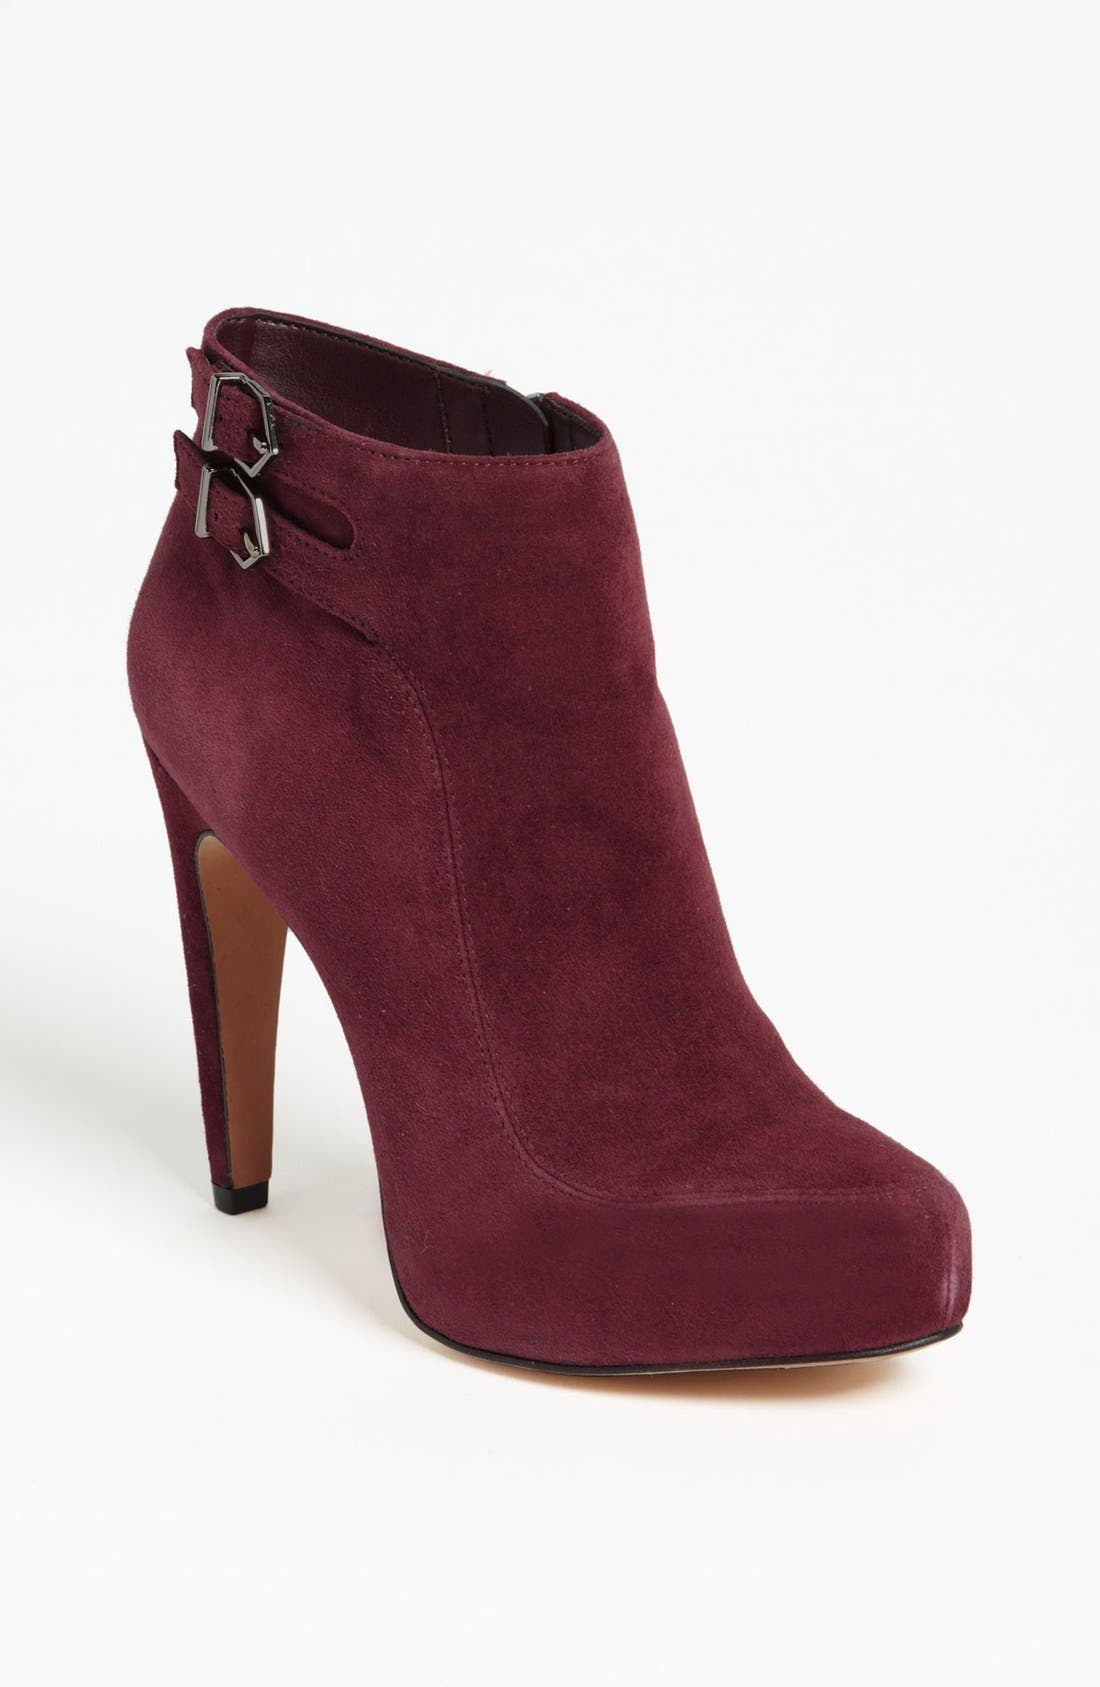 Alternate Image 1 Selected - Sam Edelman 'Kit' Boot